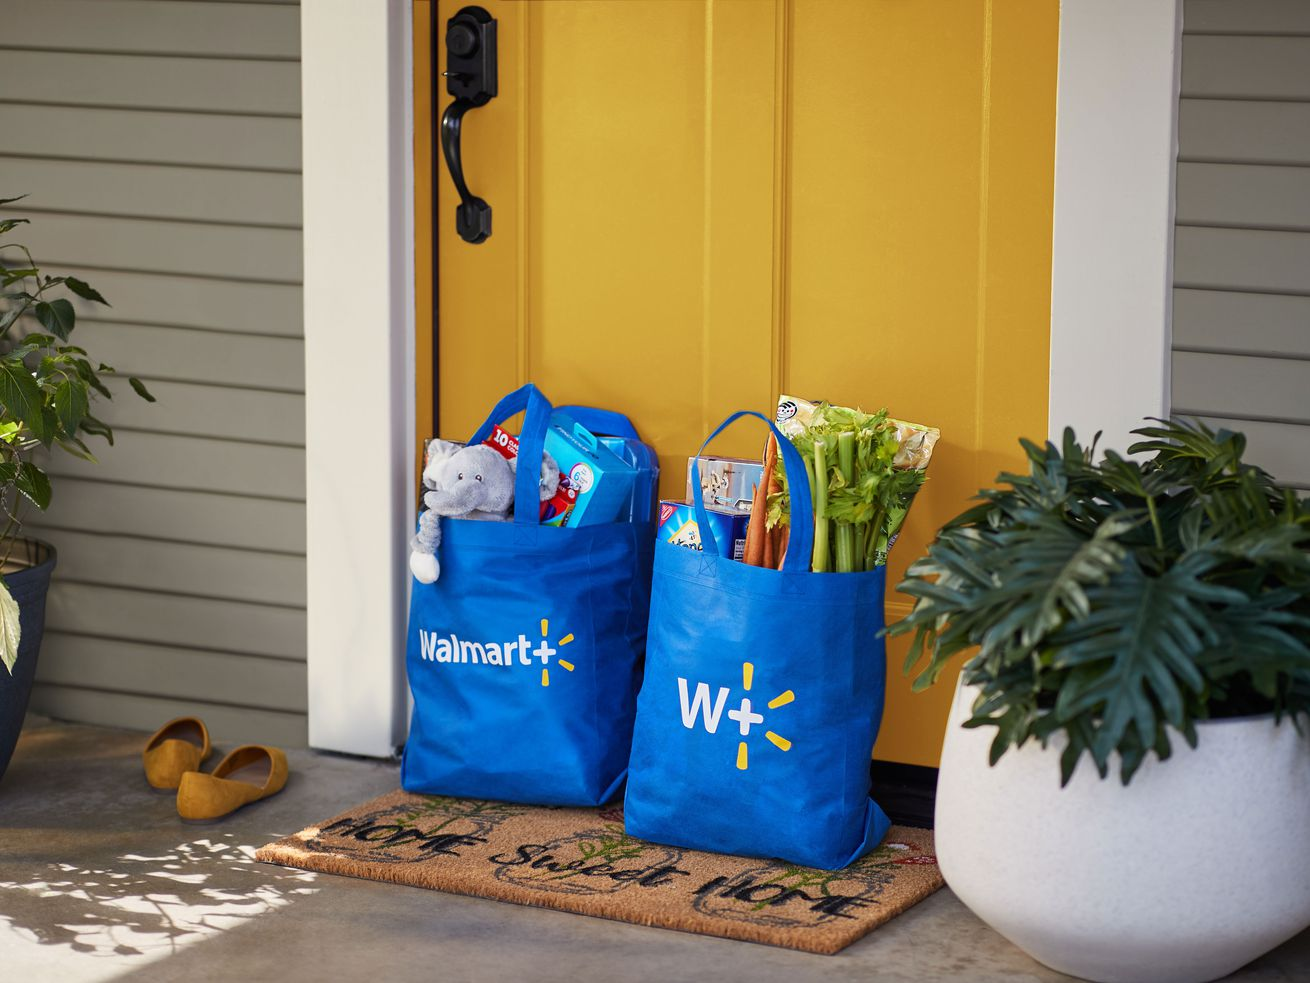 Two Walmart+ bags filled with groceries and other merchandise sit in front of the front door of a house.